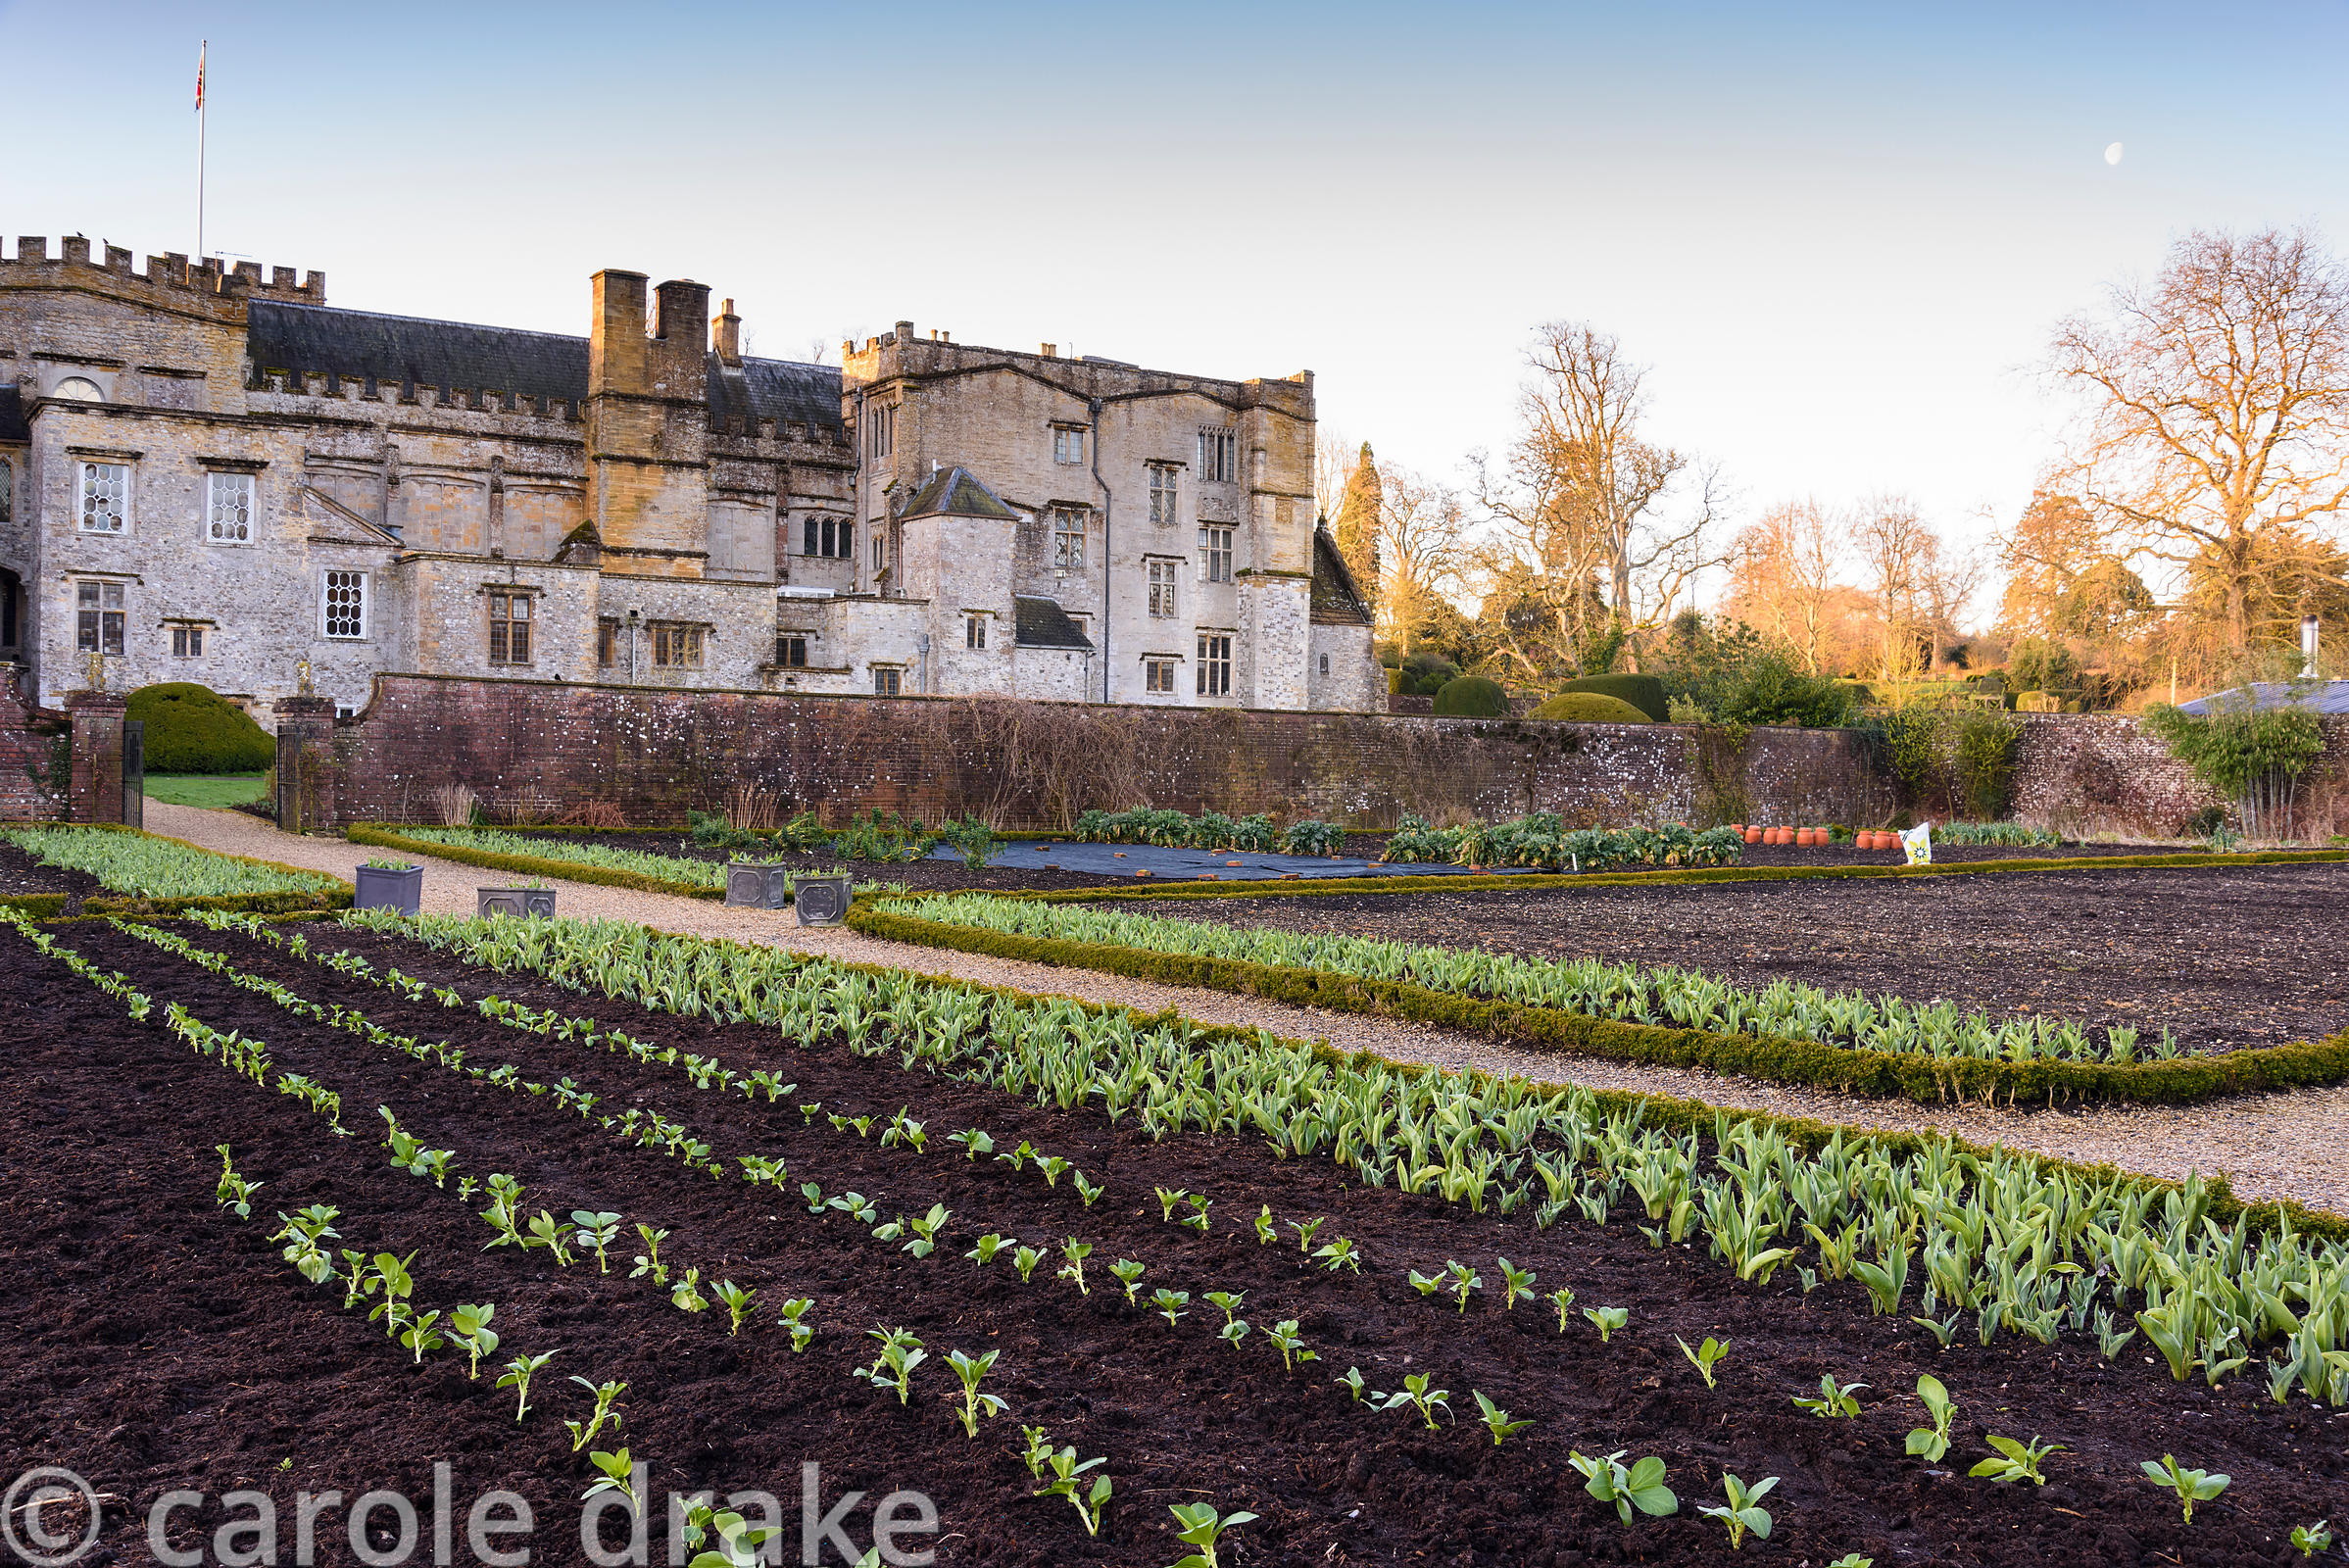 The kitchen garden at Forde Abbey in April with rows of broad bean plants in the foreground